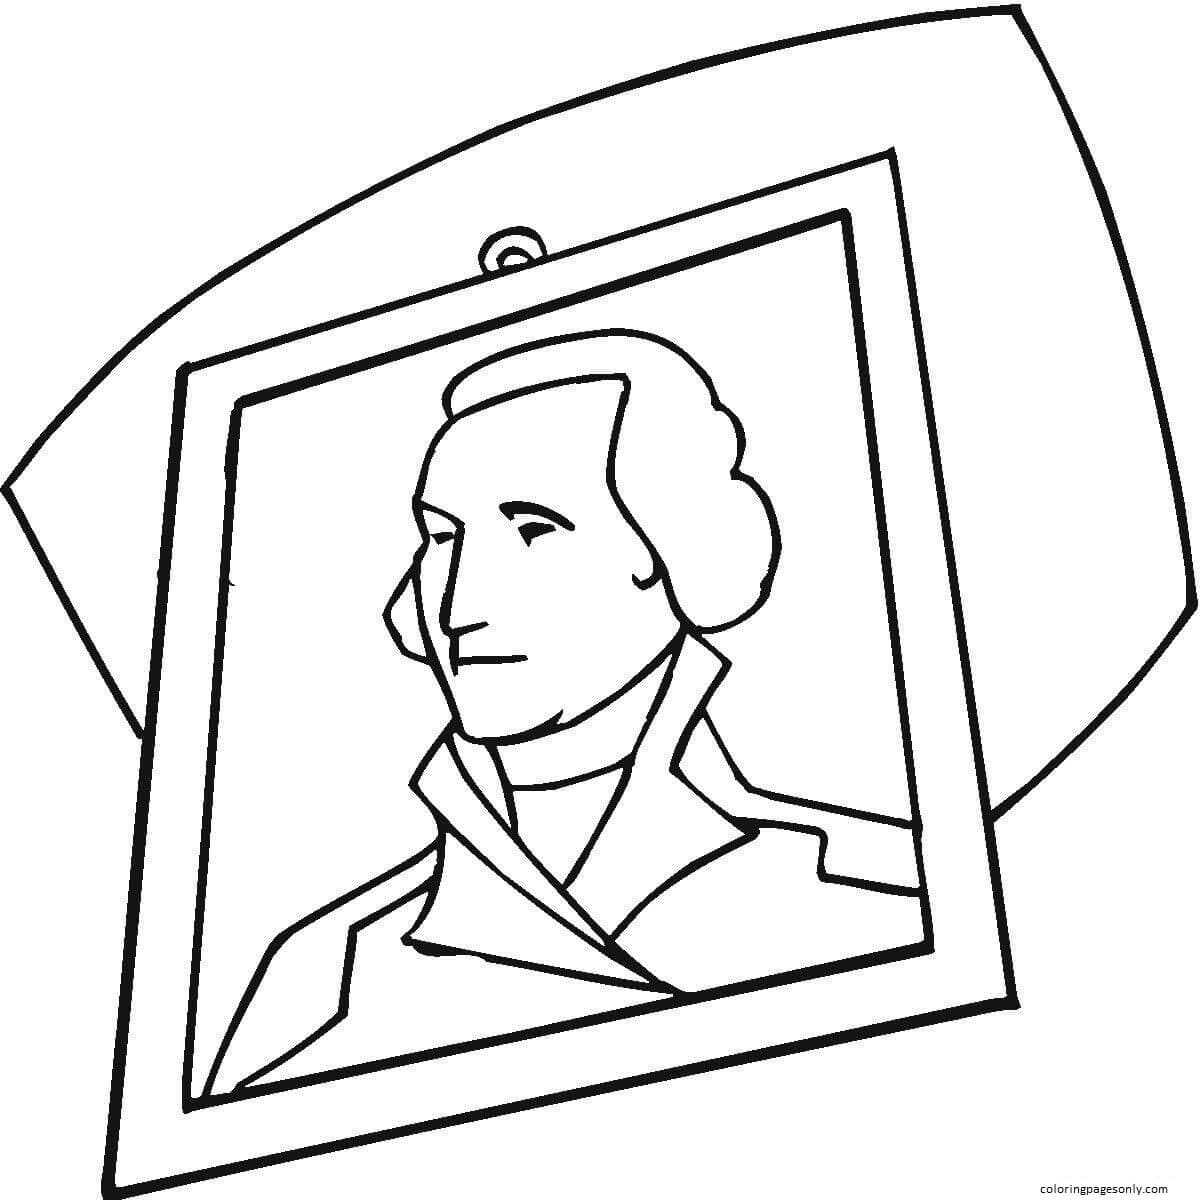 George Washington 4th Of July Coloring Pages Independence Day 4th Of July Coloring Pages Coloring Pages For Kids And Adults